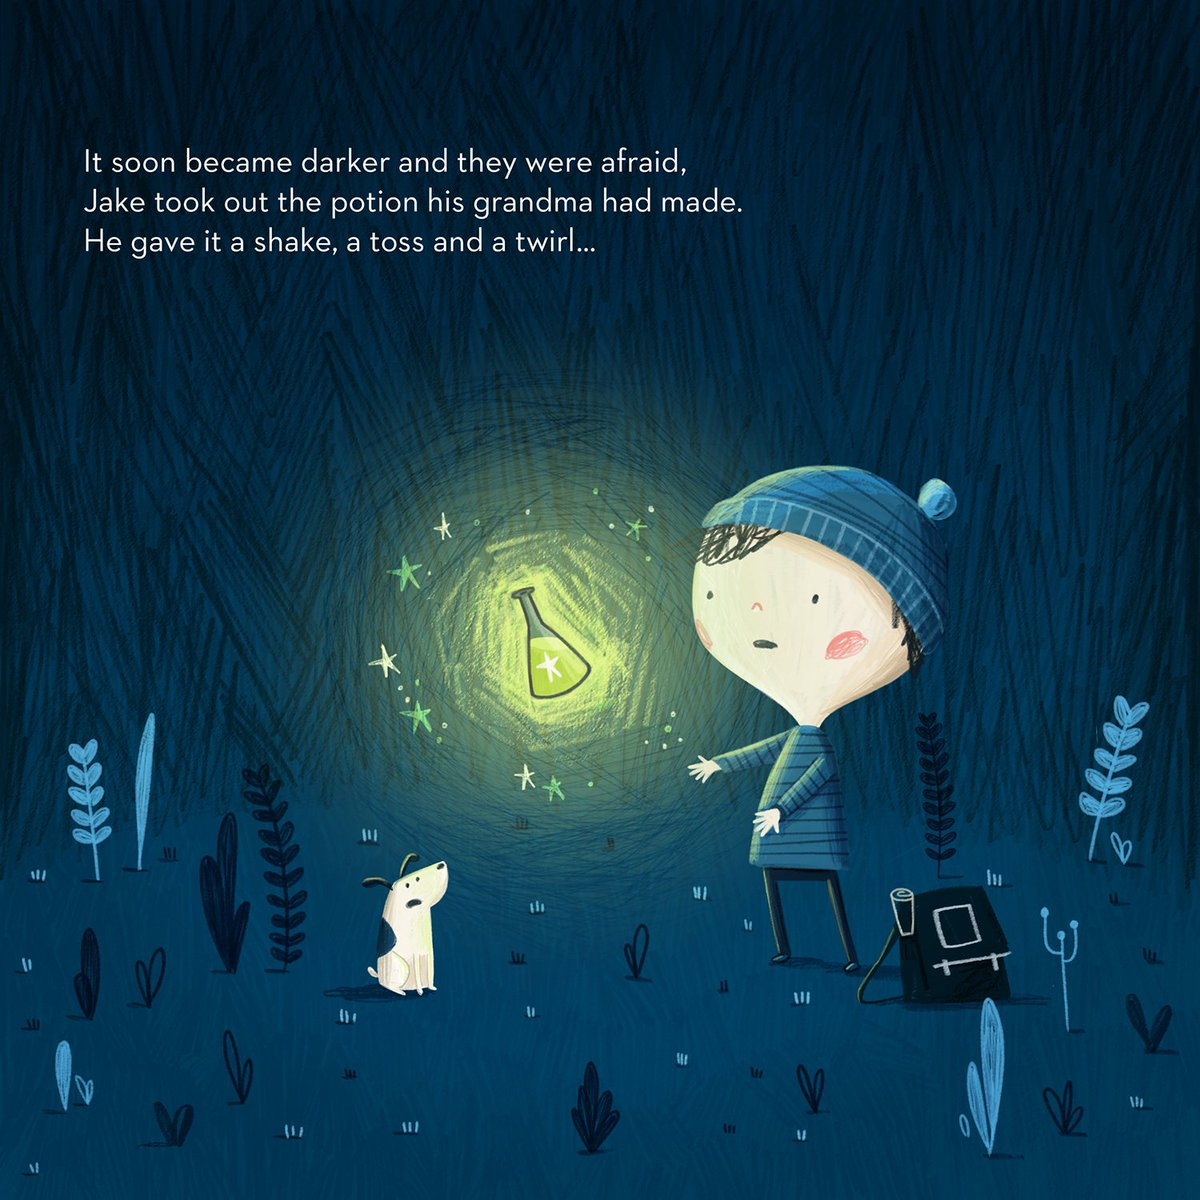 Folktale Week, Day 2: MAGIC. I have written my own little story that connects each of the daily prompts. Each day I will upload a new verse so you can see the story unfold throughout the week #folktaleweek #folktaleweek2018 #kidlitart #ChildrensBooks #Magic <br>http://pic.twitter.com/D1iZkbZPdd